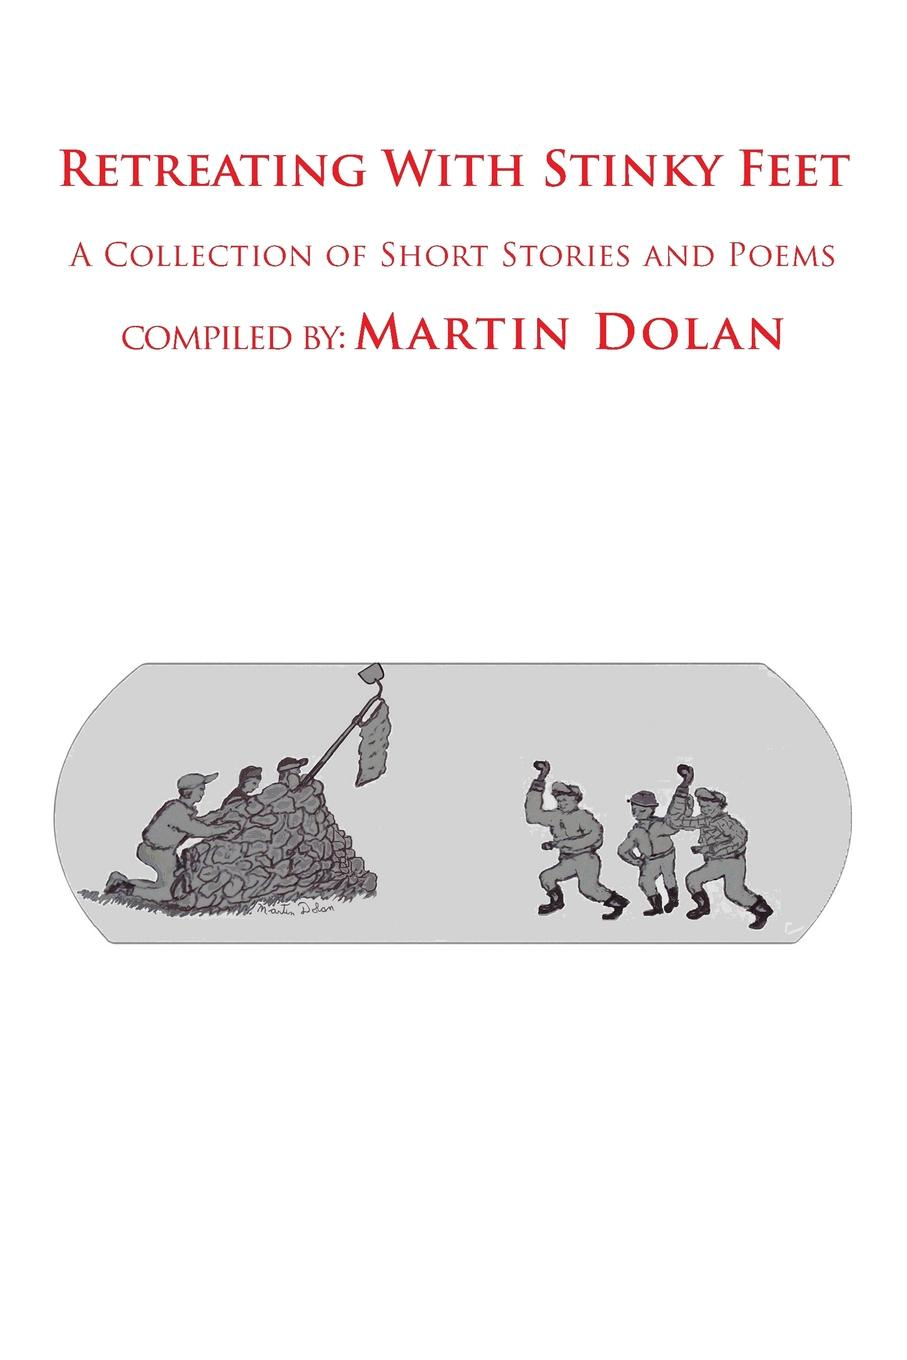 Martin Dolan Retreating With Stinky Feet. A Collection of Short Stories and Poems brittany tempel pretty bird a collection of poems and short stories